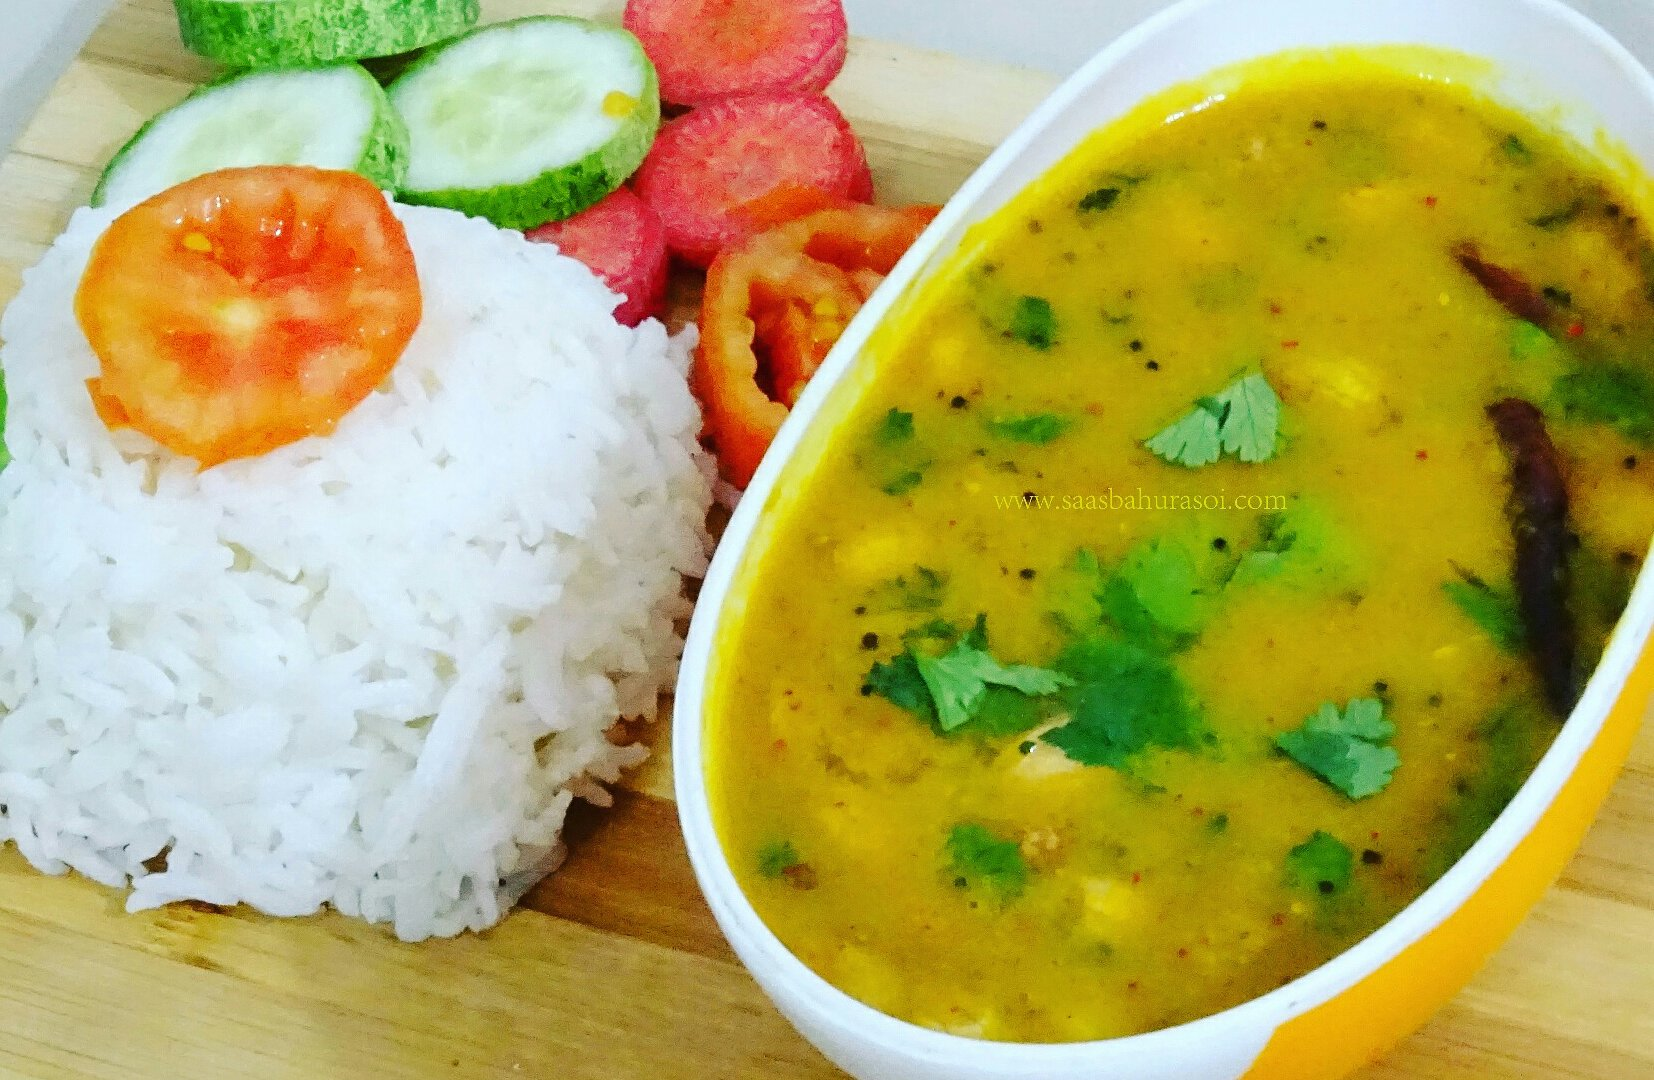 Gujarati style khatti meethi dal recipe indian food gujarati gujarati style khatti meethi dal recipe indian food gujarati recipes forumfinder Gallery